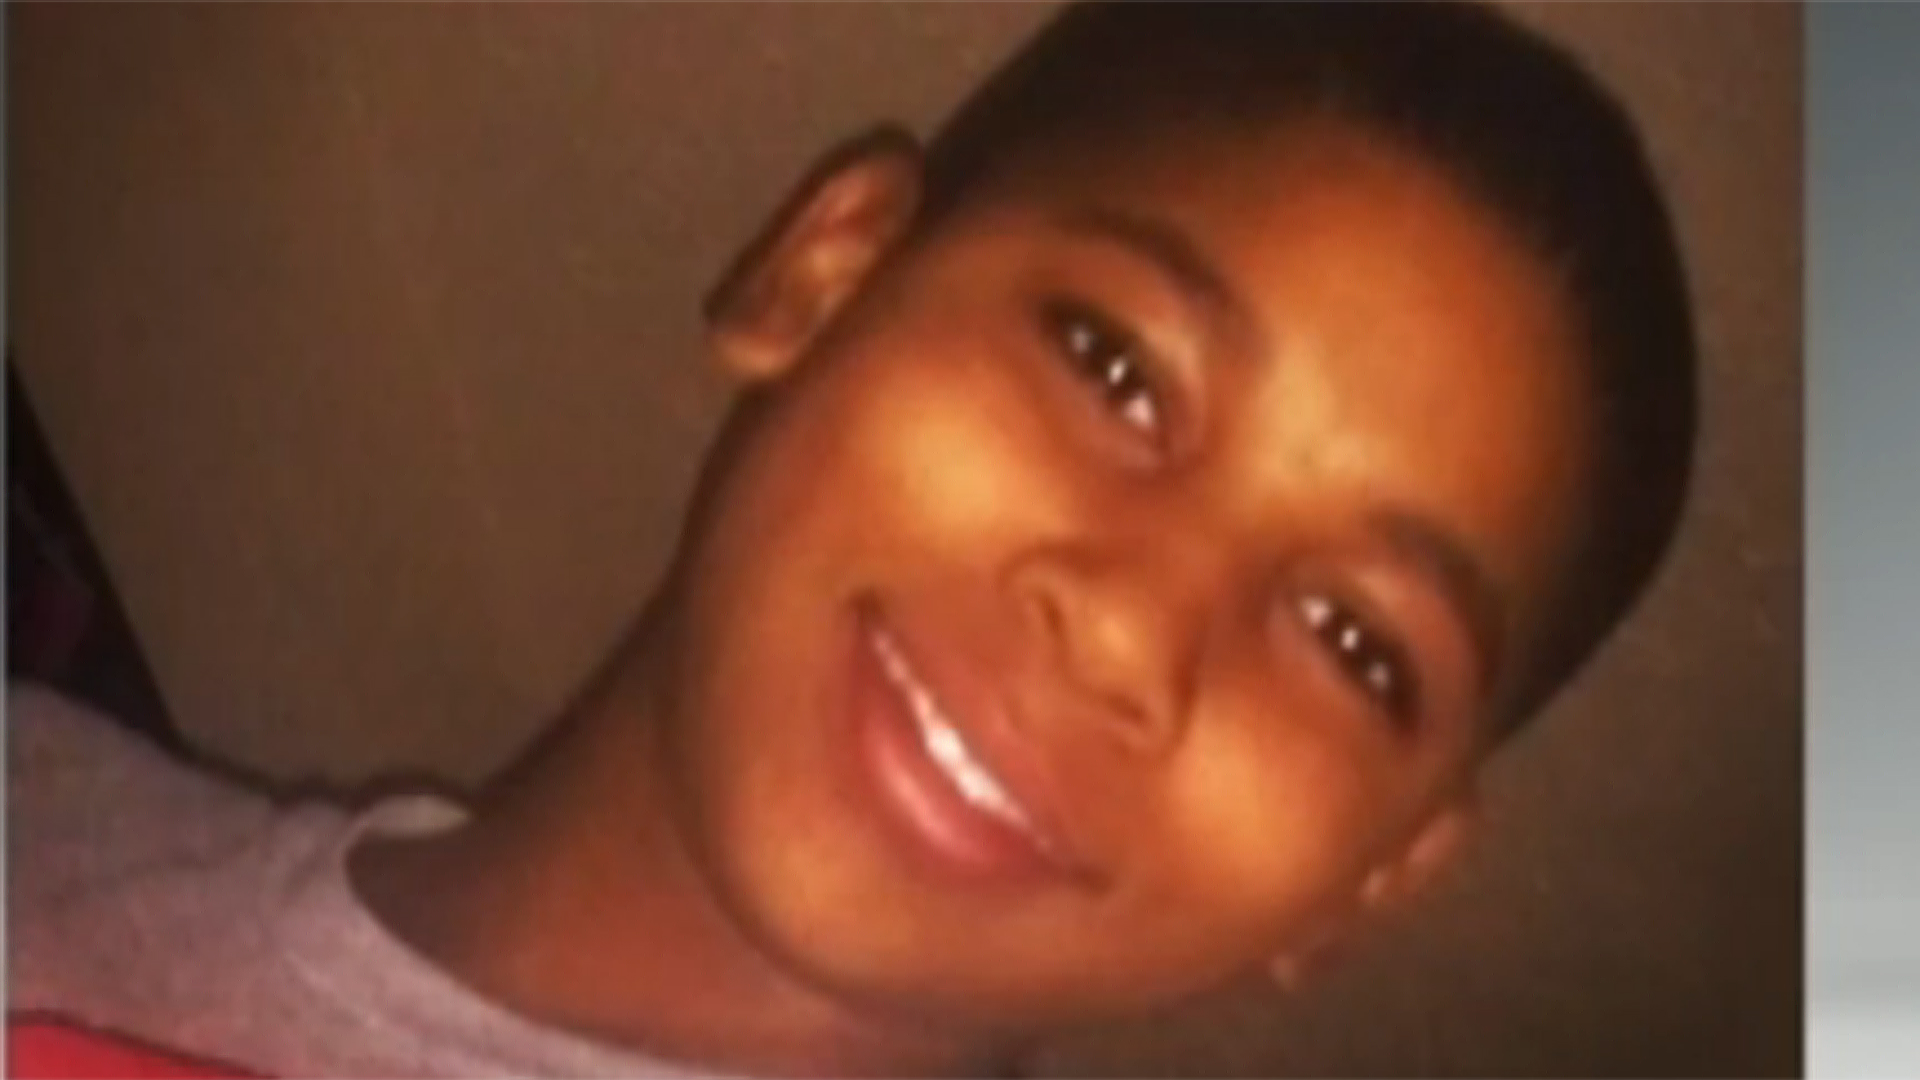 Cleveland Police Shoot 12 Year Old Holding Bb Gun